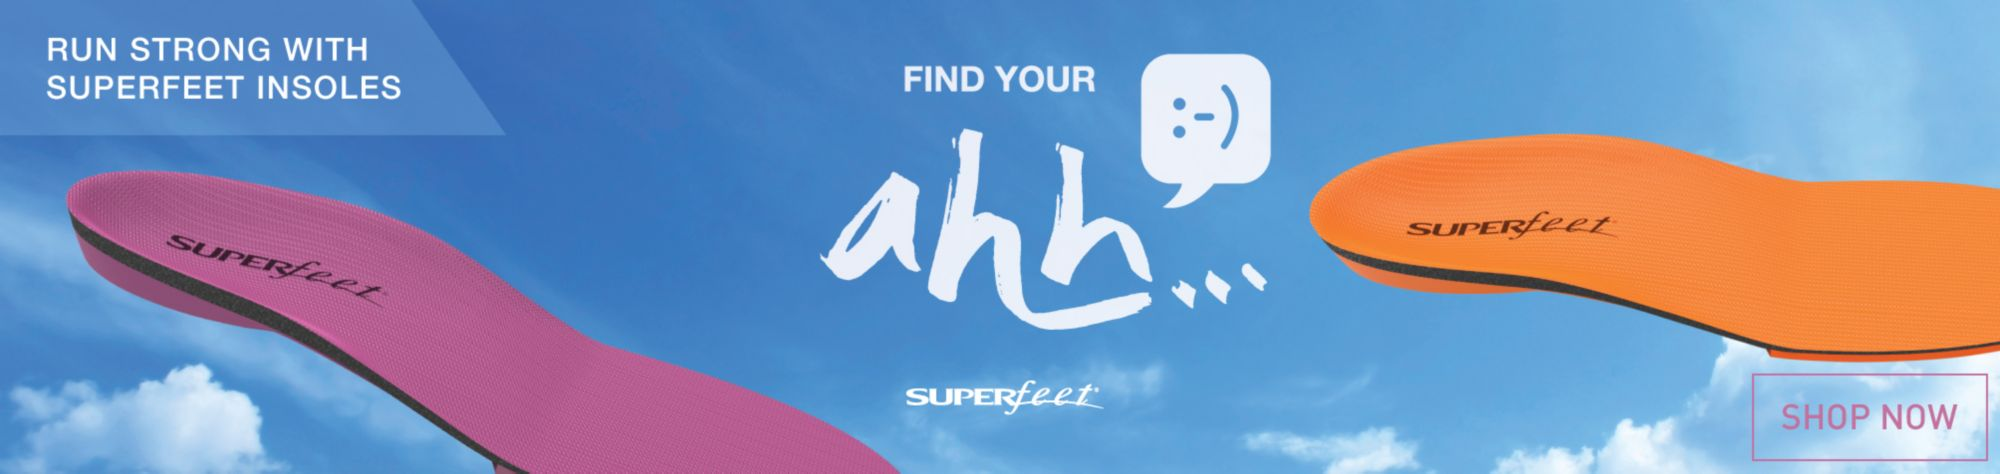 Shop Superfeet Insoles